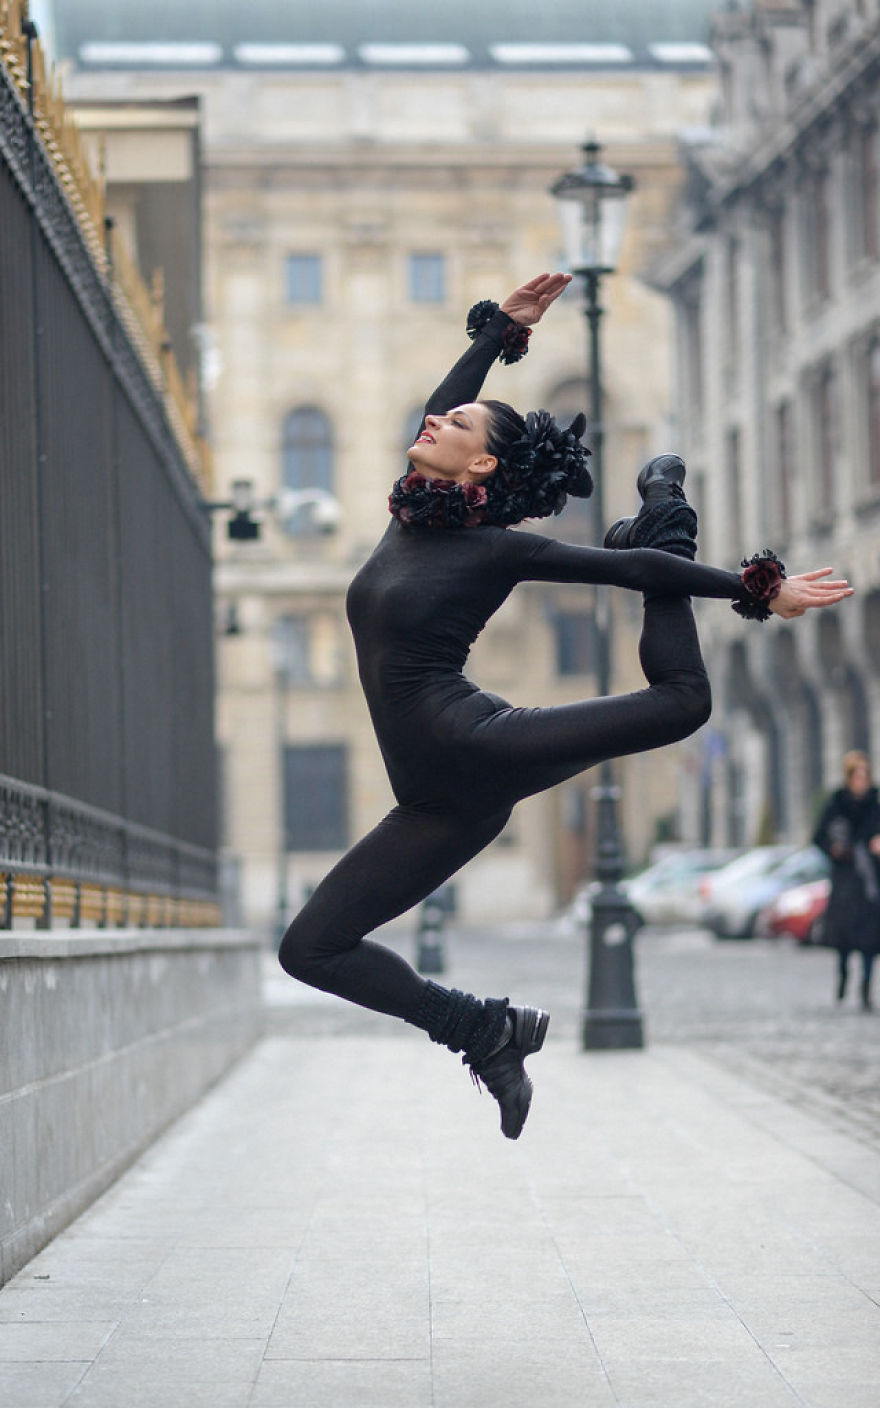 Urban Swan: I Photographed A Ballerina In The Streets Of Romania